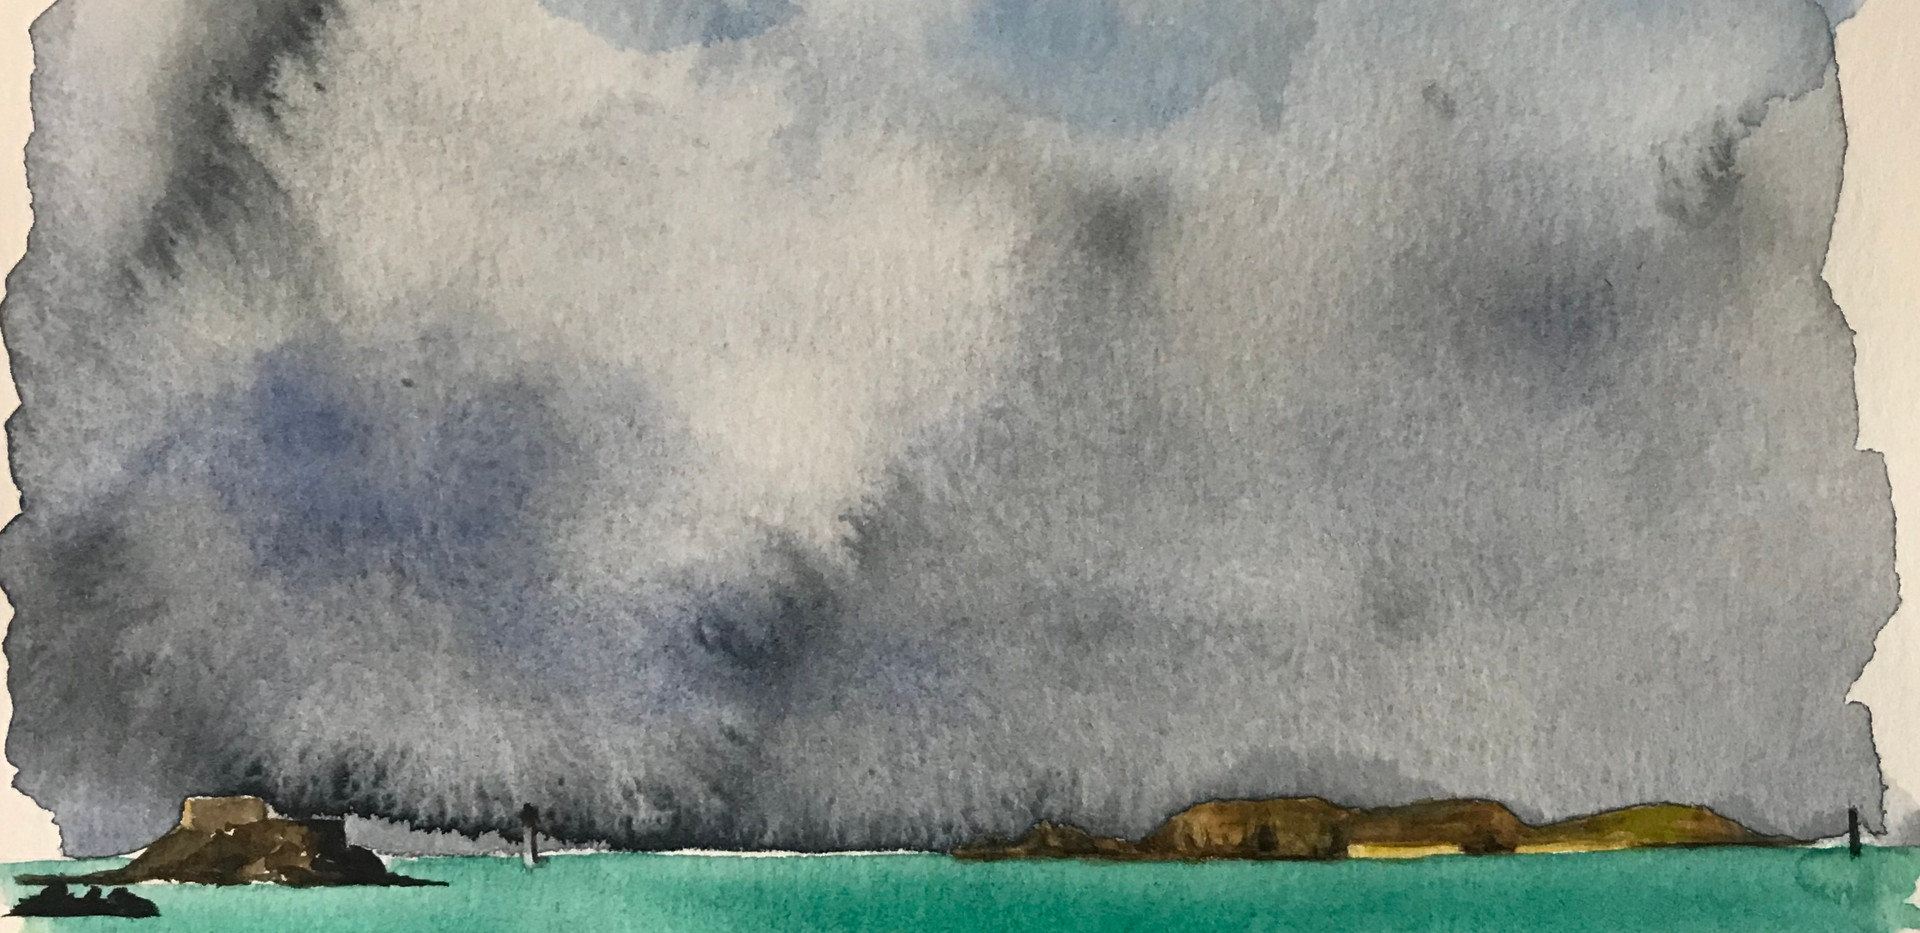 Cézembre Island in the storm